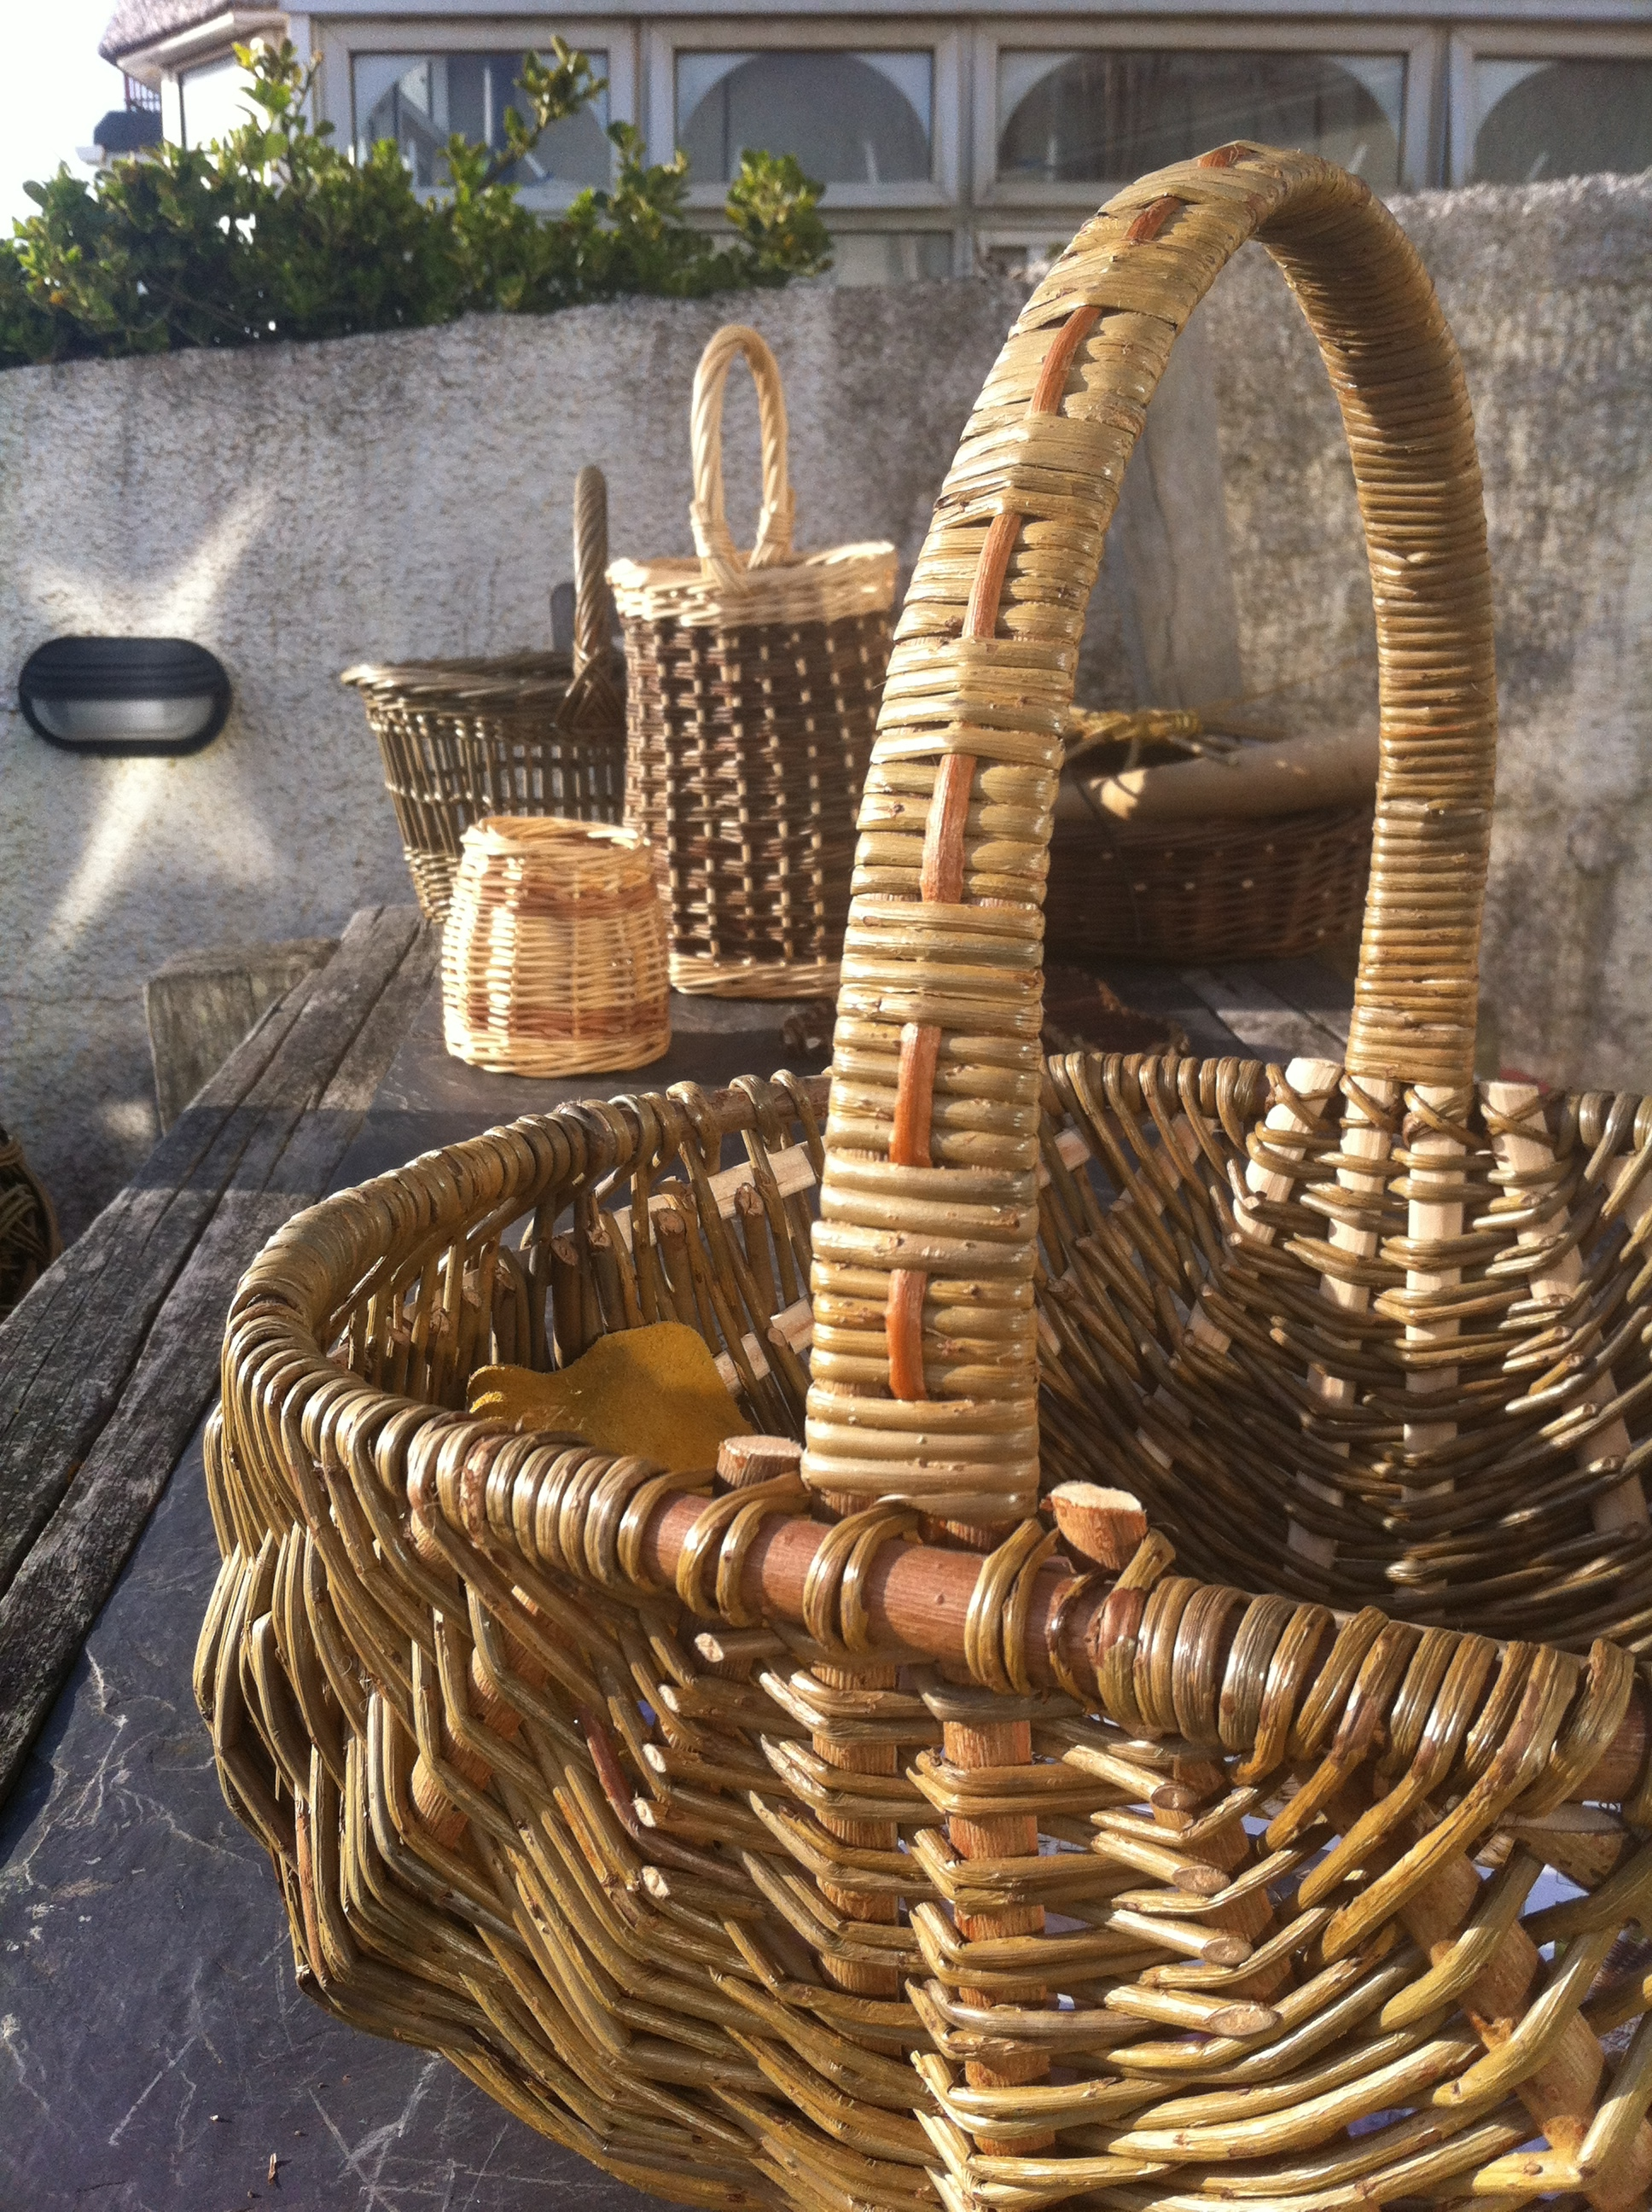 Dried willow basketry.